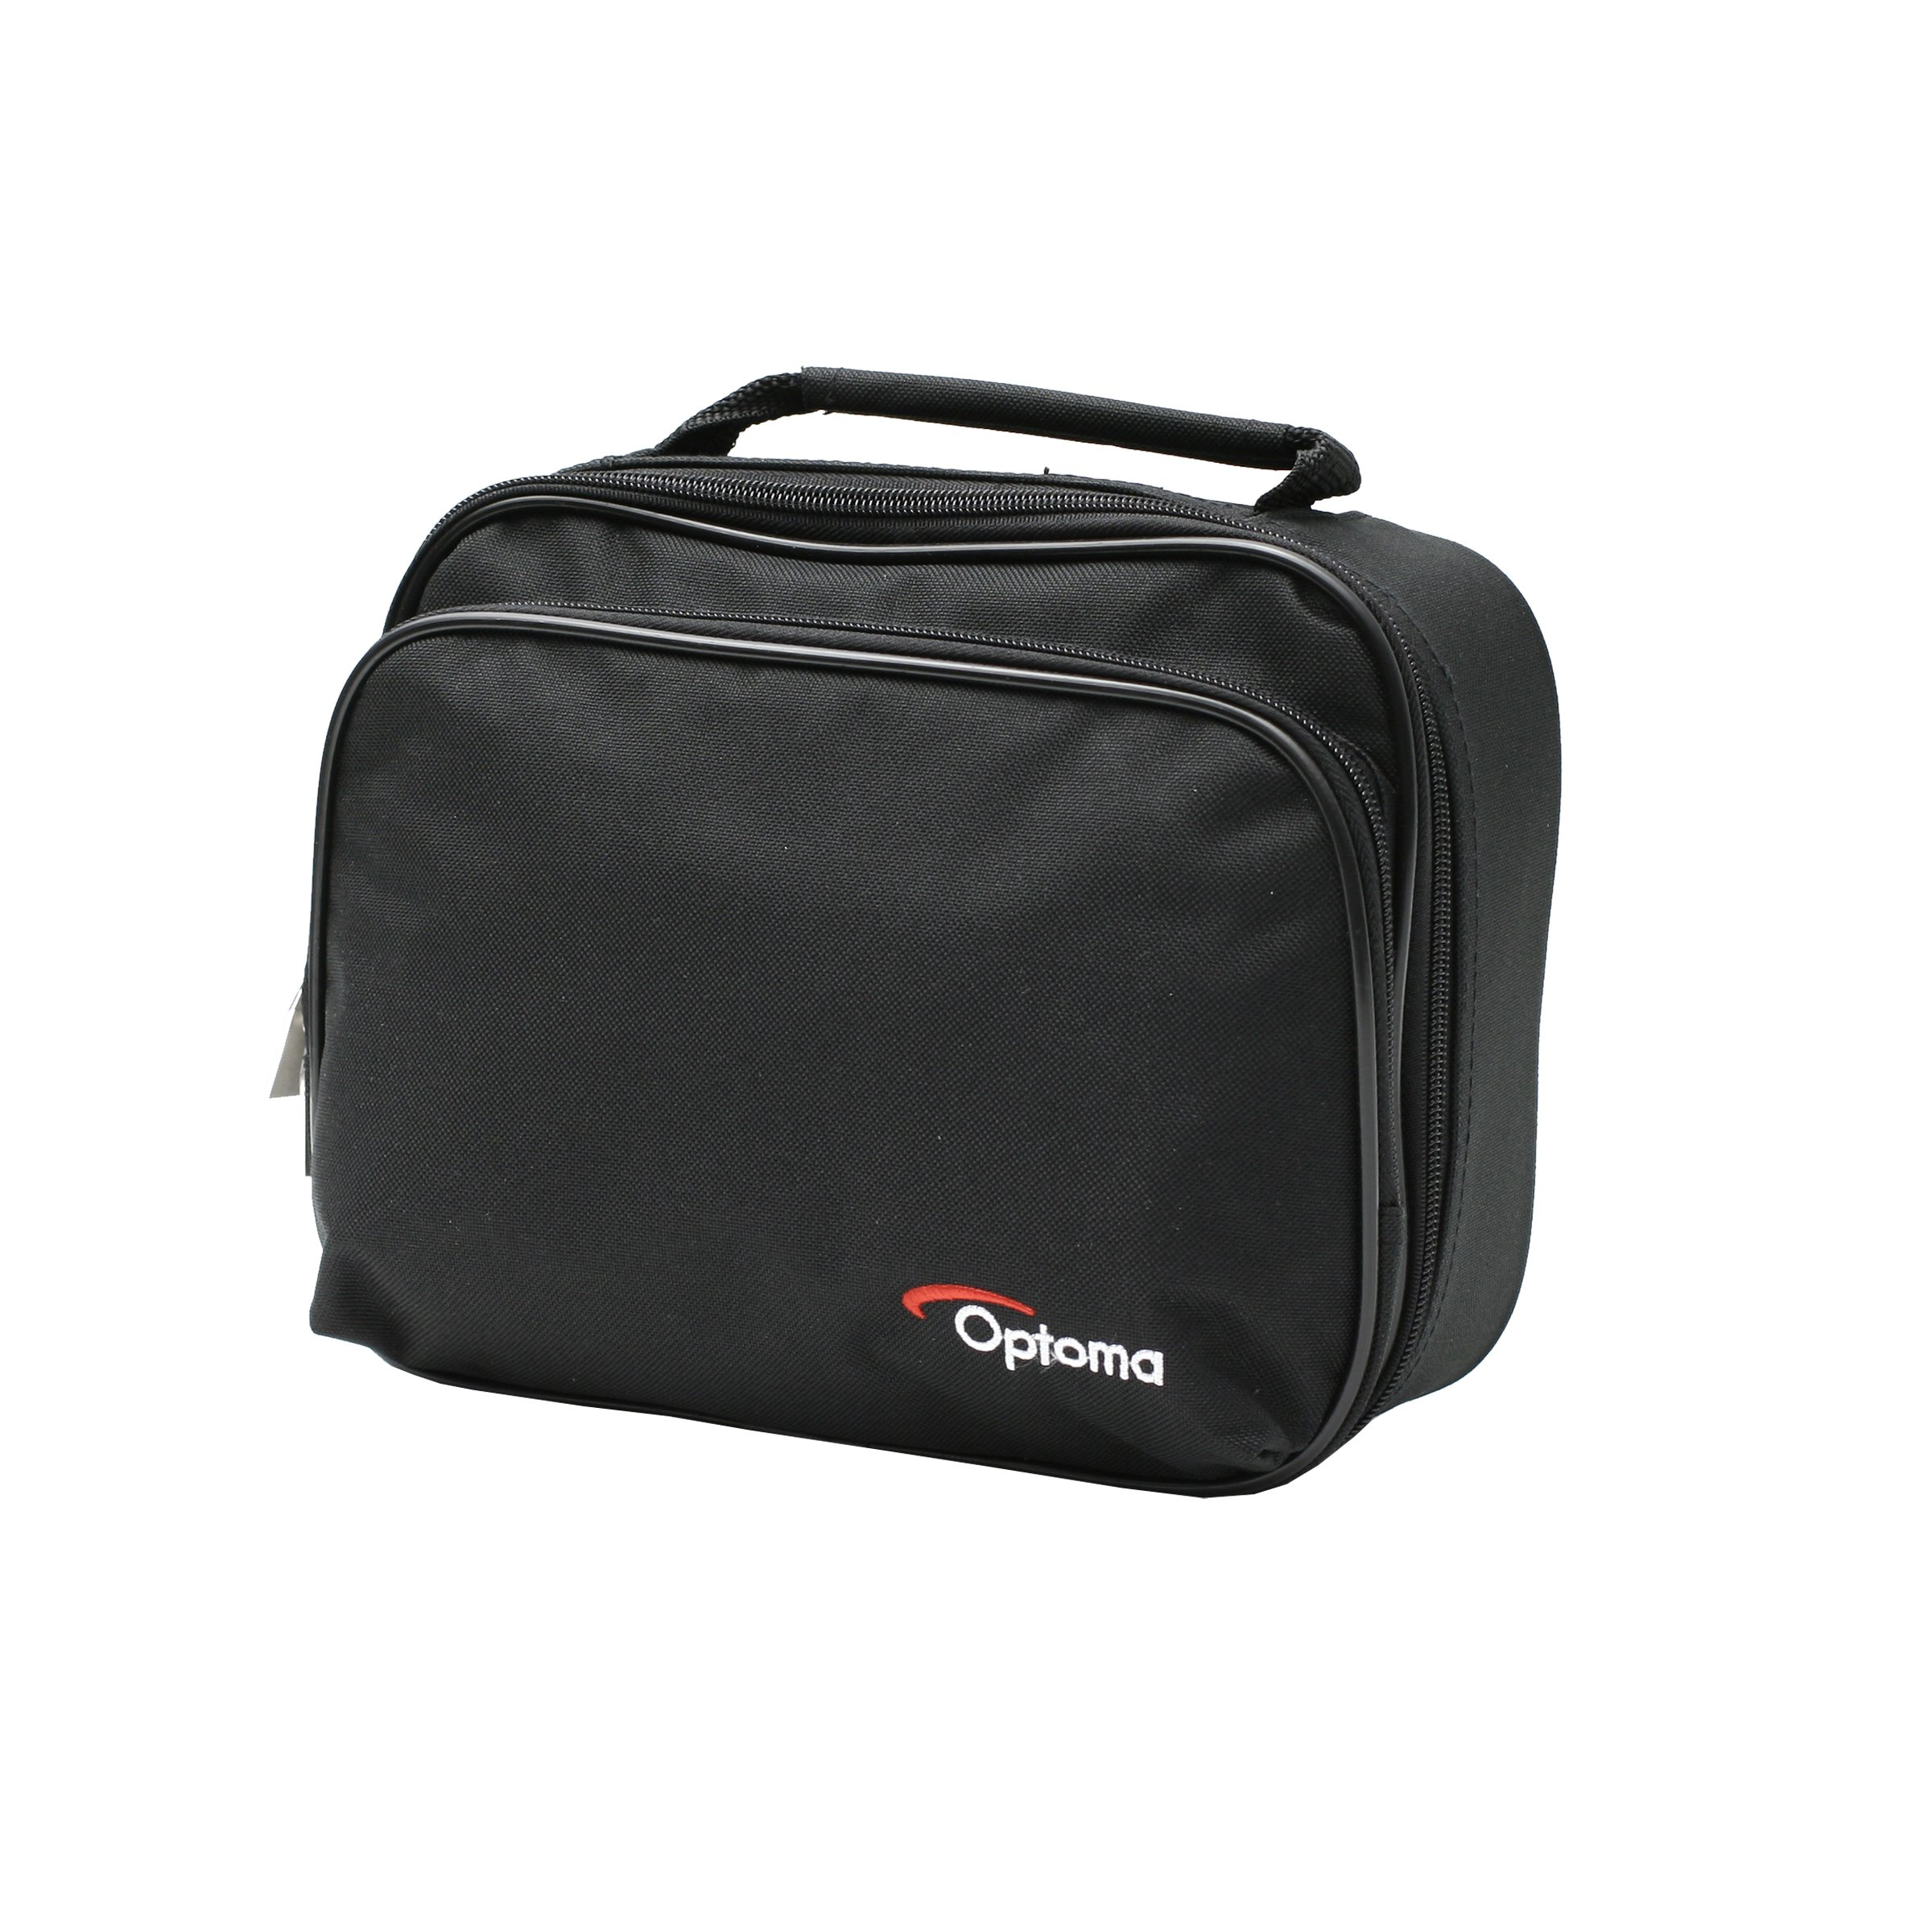 Optoma BK-4021, Soft Projector Case (Discontinued by Manufacturer)